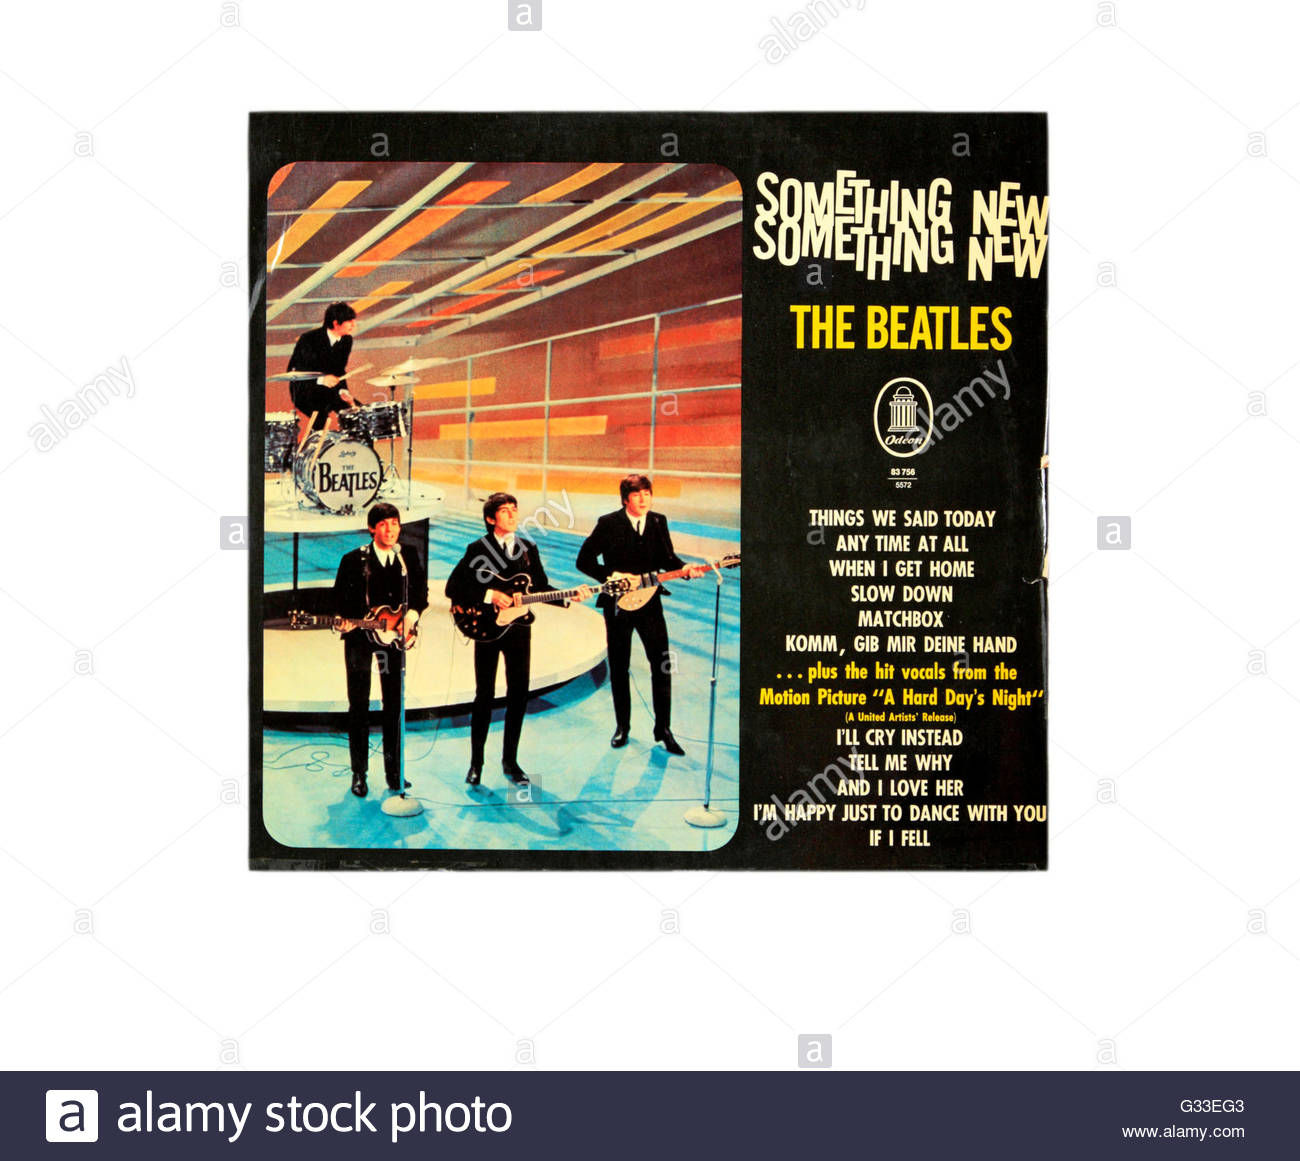 Something New long playing record cover by the Beatles. - Stock Image